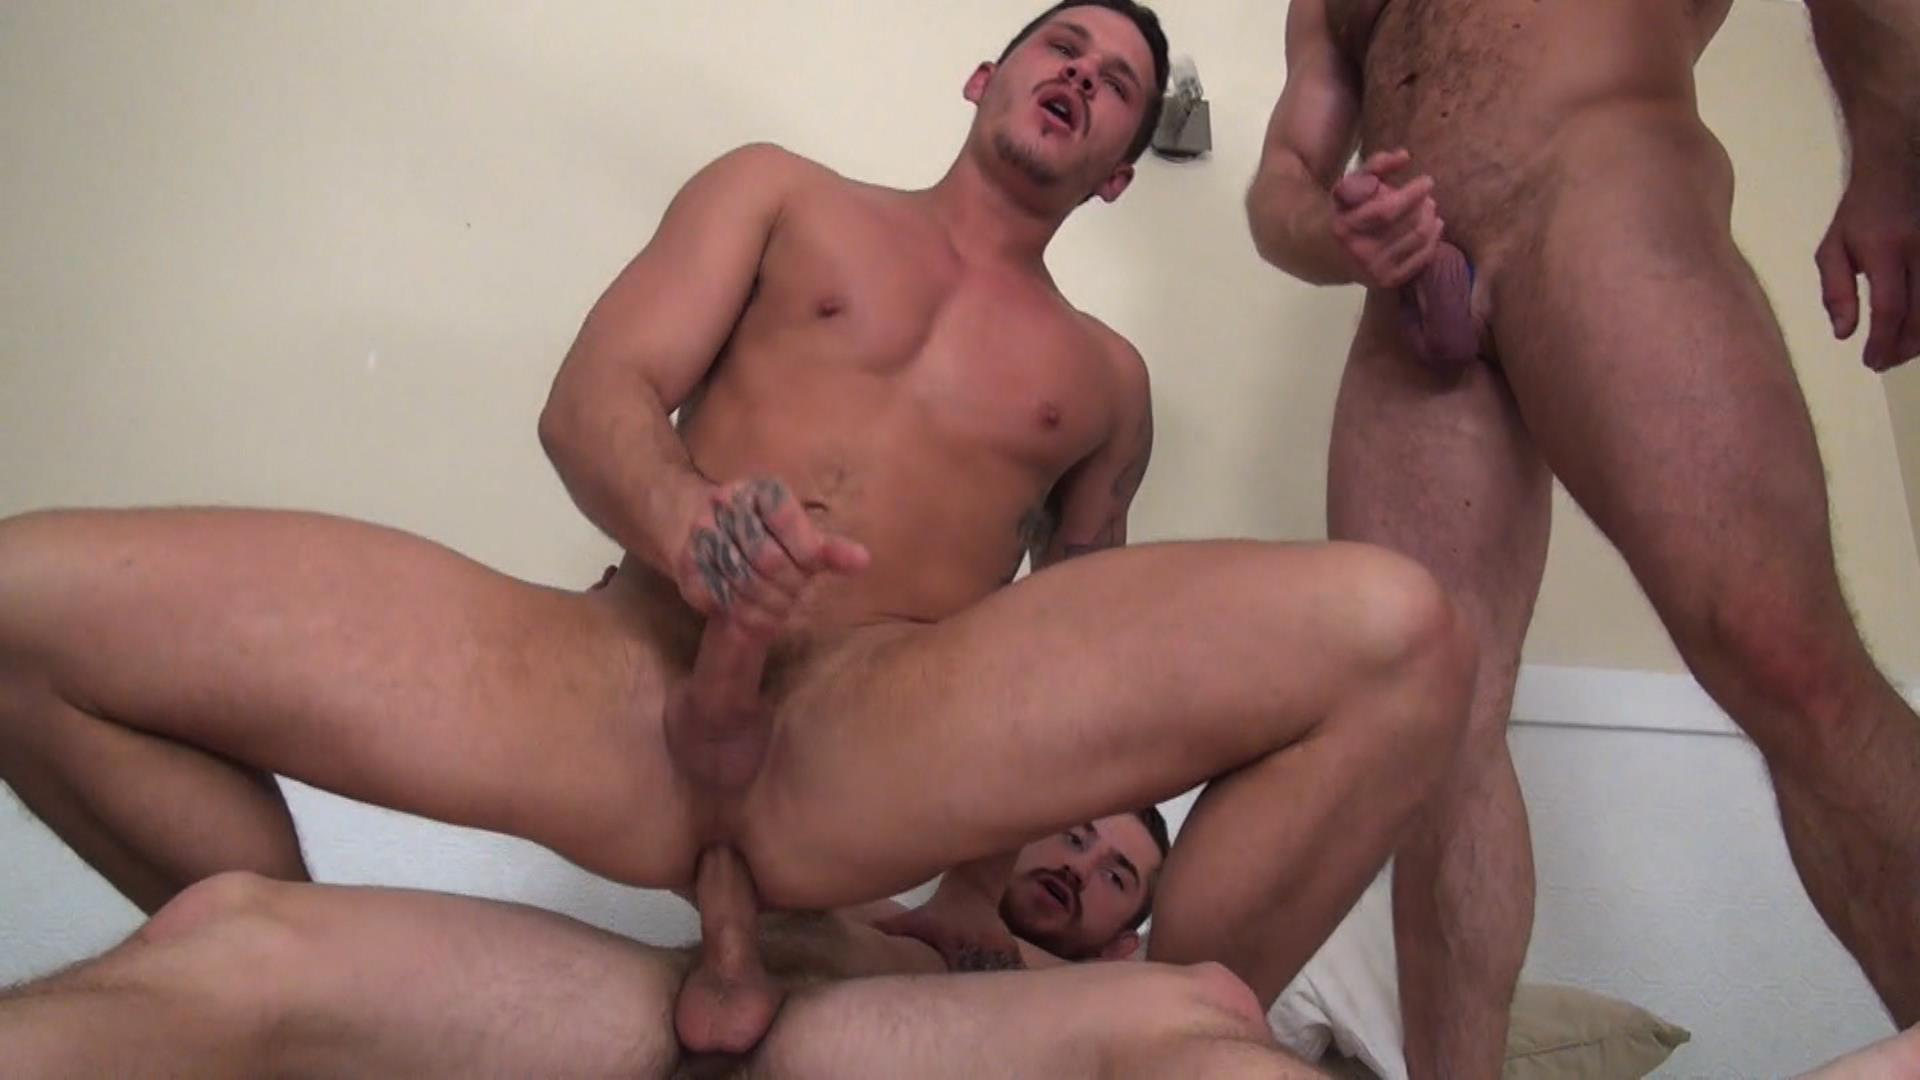 Raw Fuck Club Dayton OConnor Tate Ryder Shay Michaels Adam Russo Bareback Breeding Amateur Gay Porn 3 Tate Ryder Gets Three Hairy Muscle Daddy Bareback Cocks